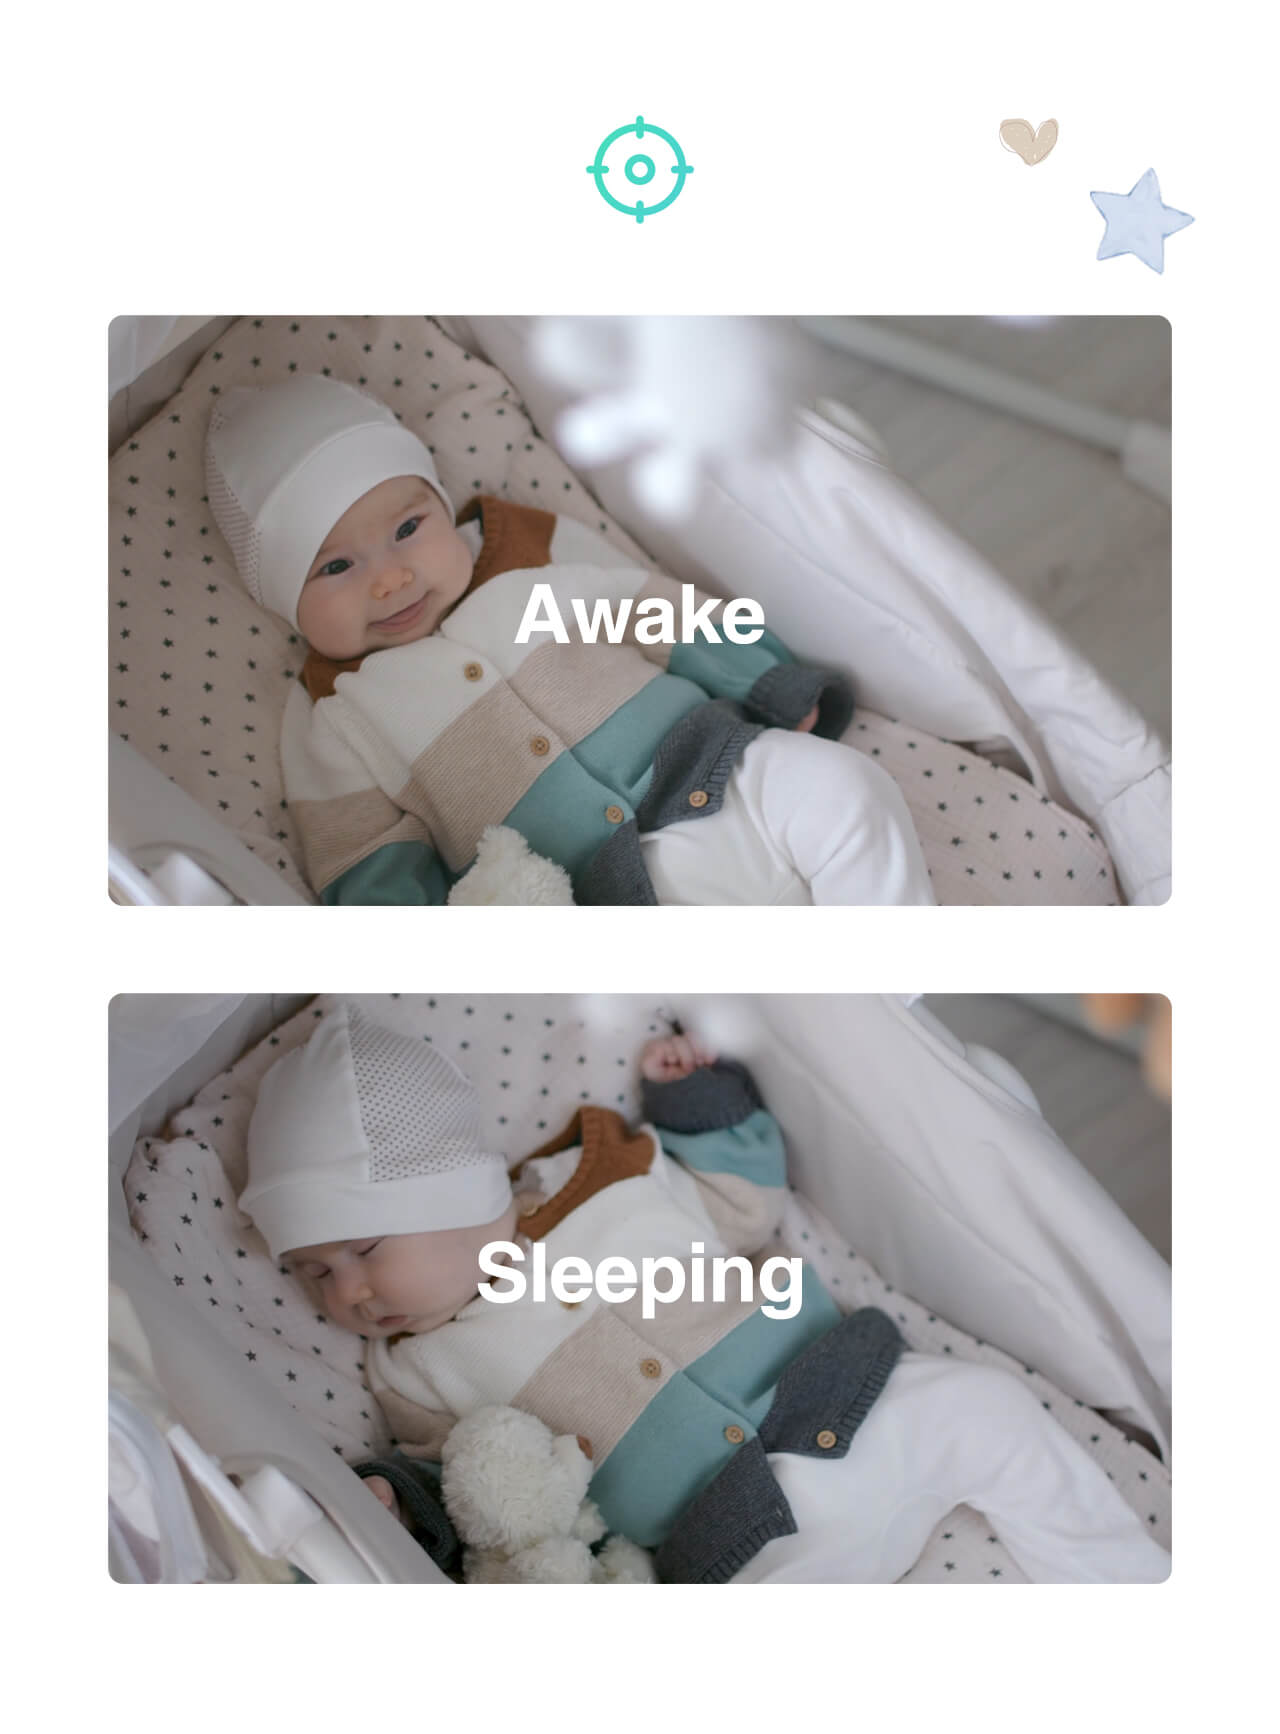 SimCam Baby can send alerts to your phone and record a video when your baby falls asleep or wakes up